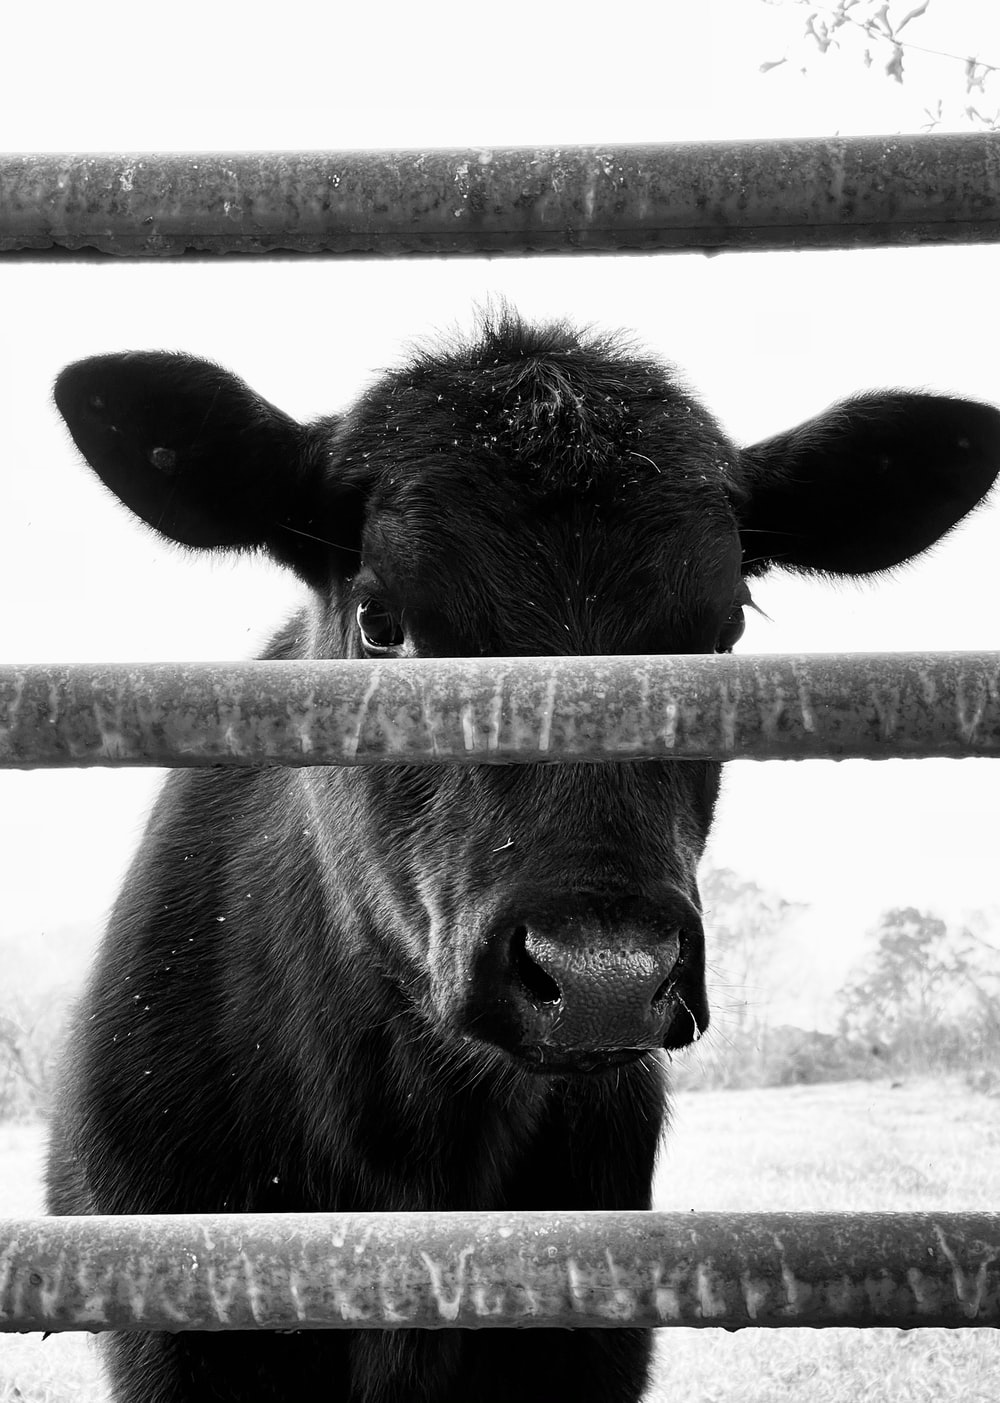 grayscale photo of cow in cage